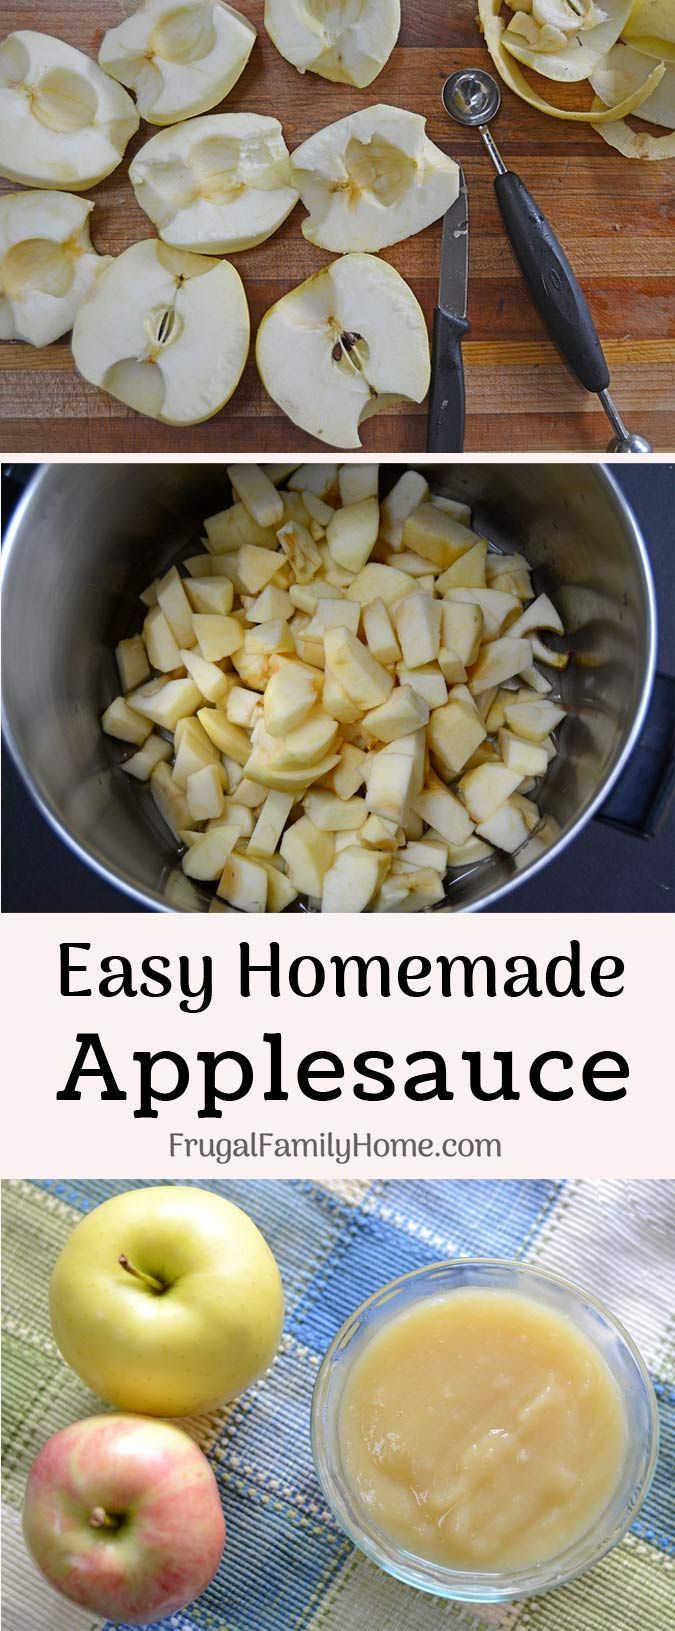 Two Ingredient Easy Homemade Applesauce Recipe- This homemade applesauce recipe is so easy to make with only two ingredients it's healthy too. It's prepared on the stovetop with no sugar added. We love this super simple applesauce recipe.